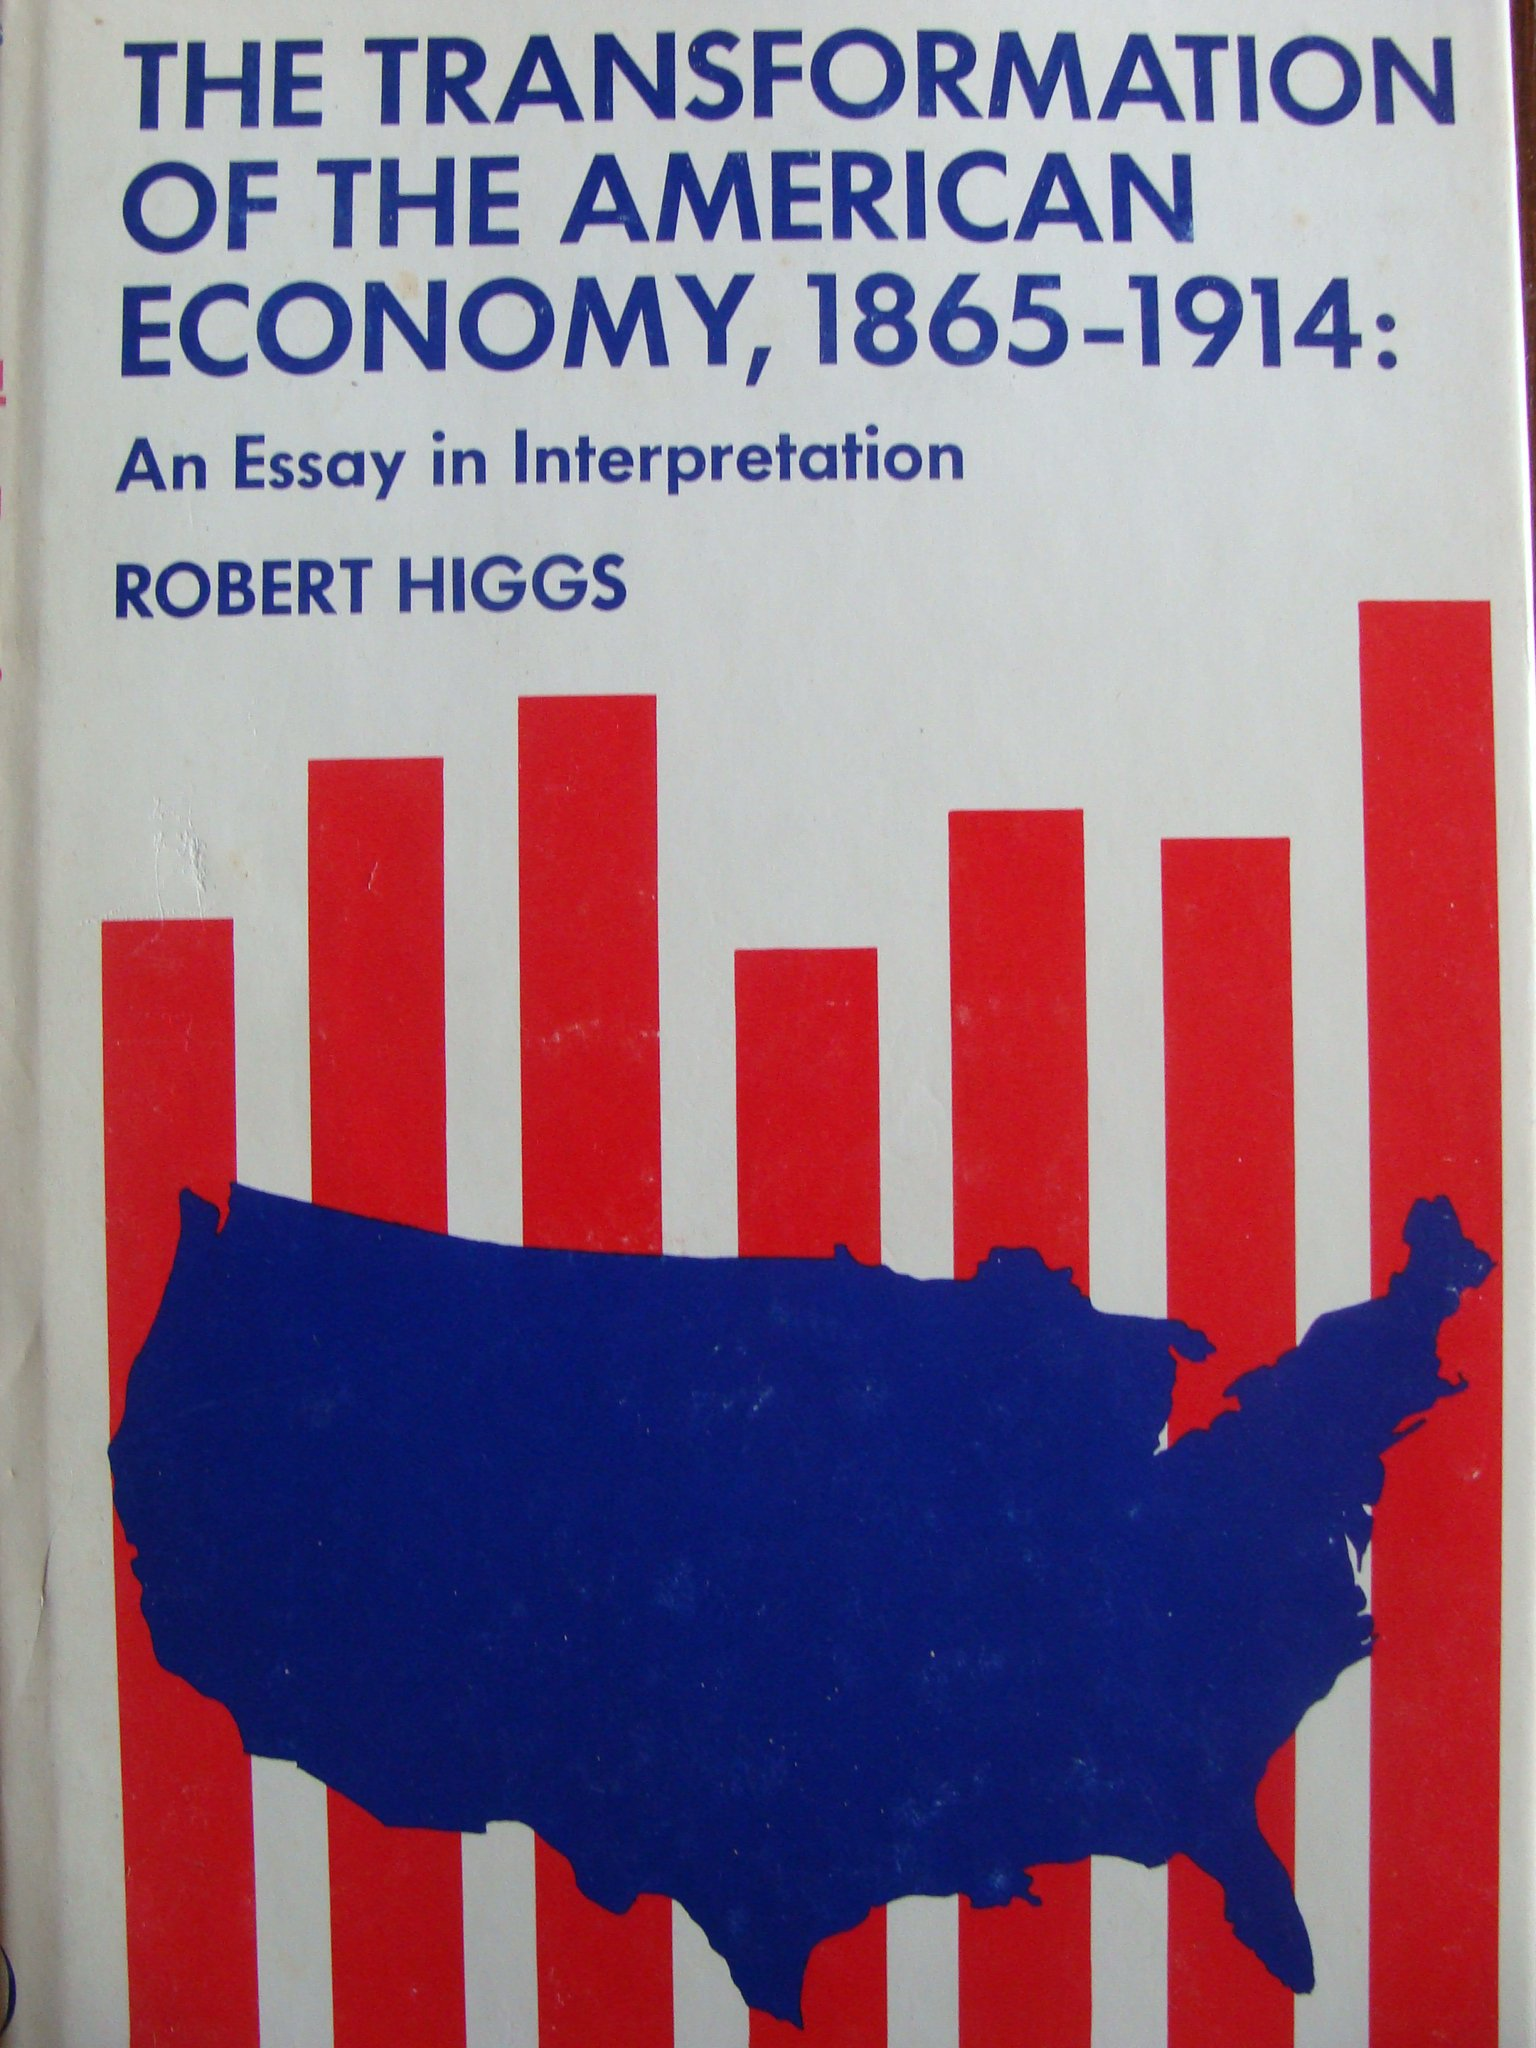 transformation of the american economy an essay in transformation of the american economy 1865 1914 an essay in interpretation american economic history robert higgs 9780471390039 com books